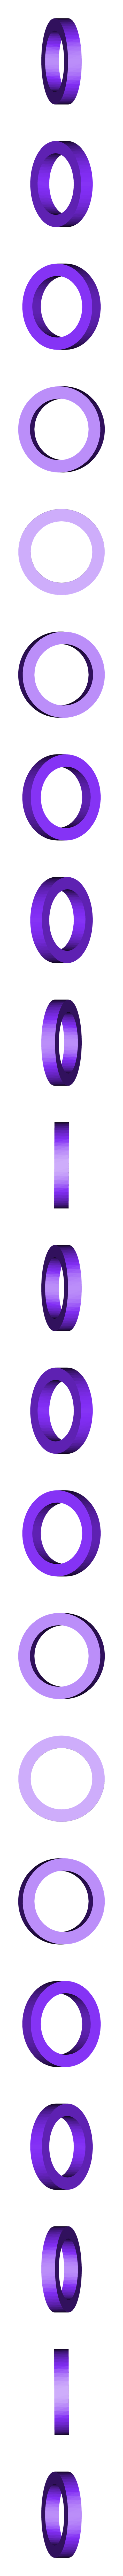 OpenRC_F1_250scaled_-_61806_Bearing_30-1.STL Télécharger fichier STL gratuit OpenRC F1 250% scaled • Design imprimable en 3D, colorFabb